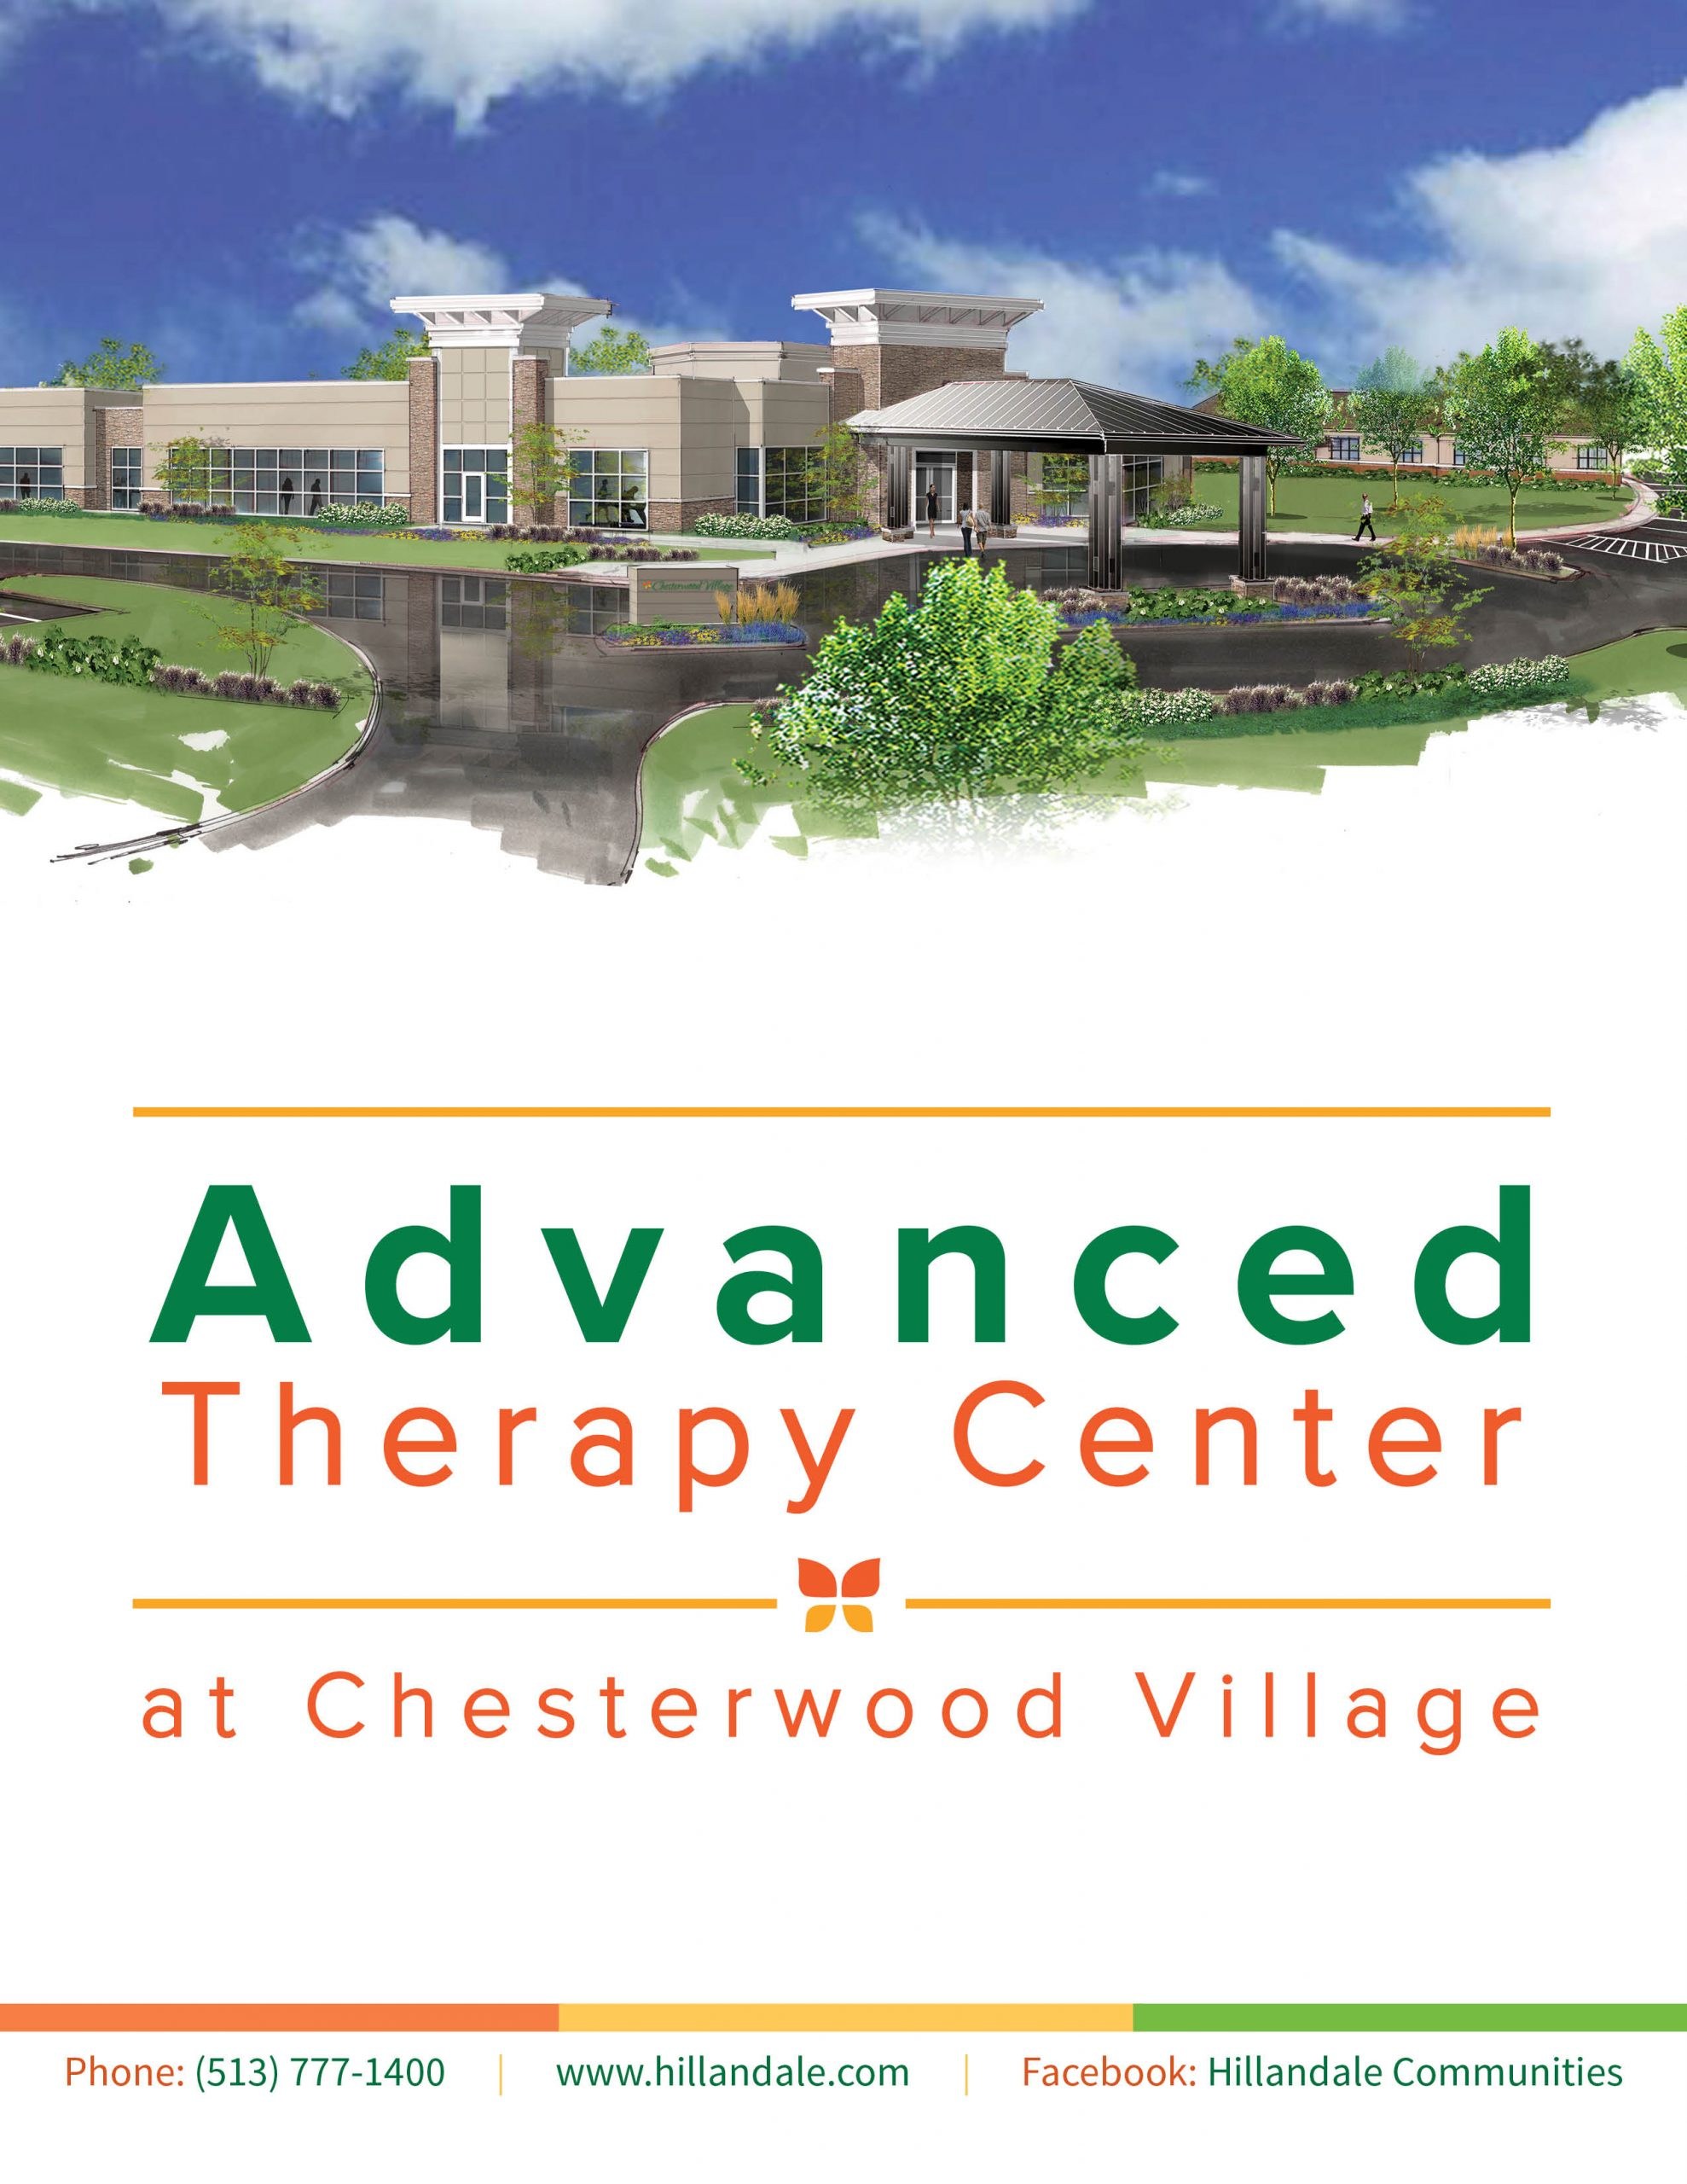 Advanced Therapy Center Brochure | Hillandale Communities